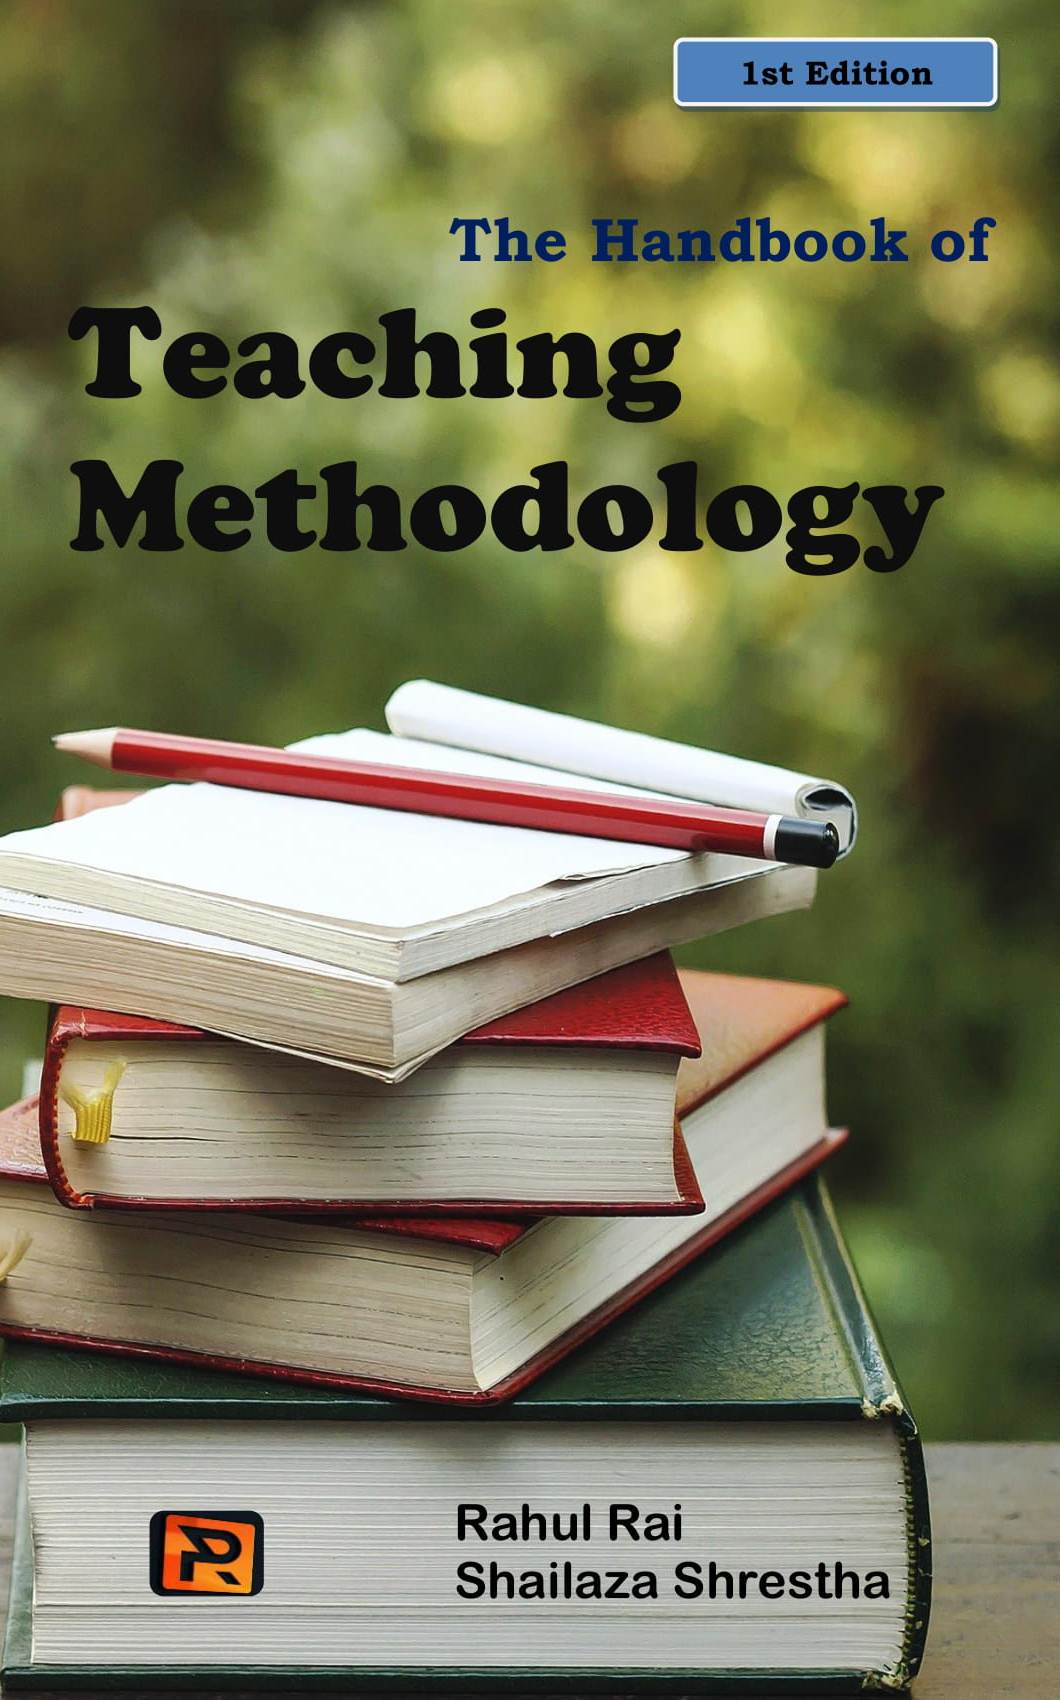 The Handbook of Teaching Methodology